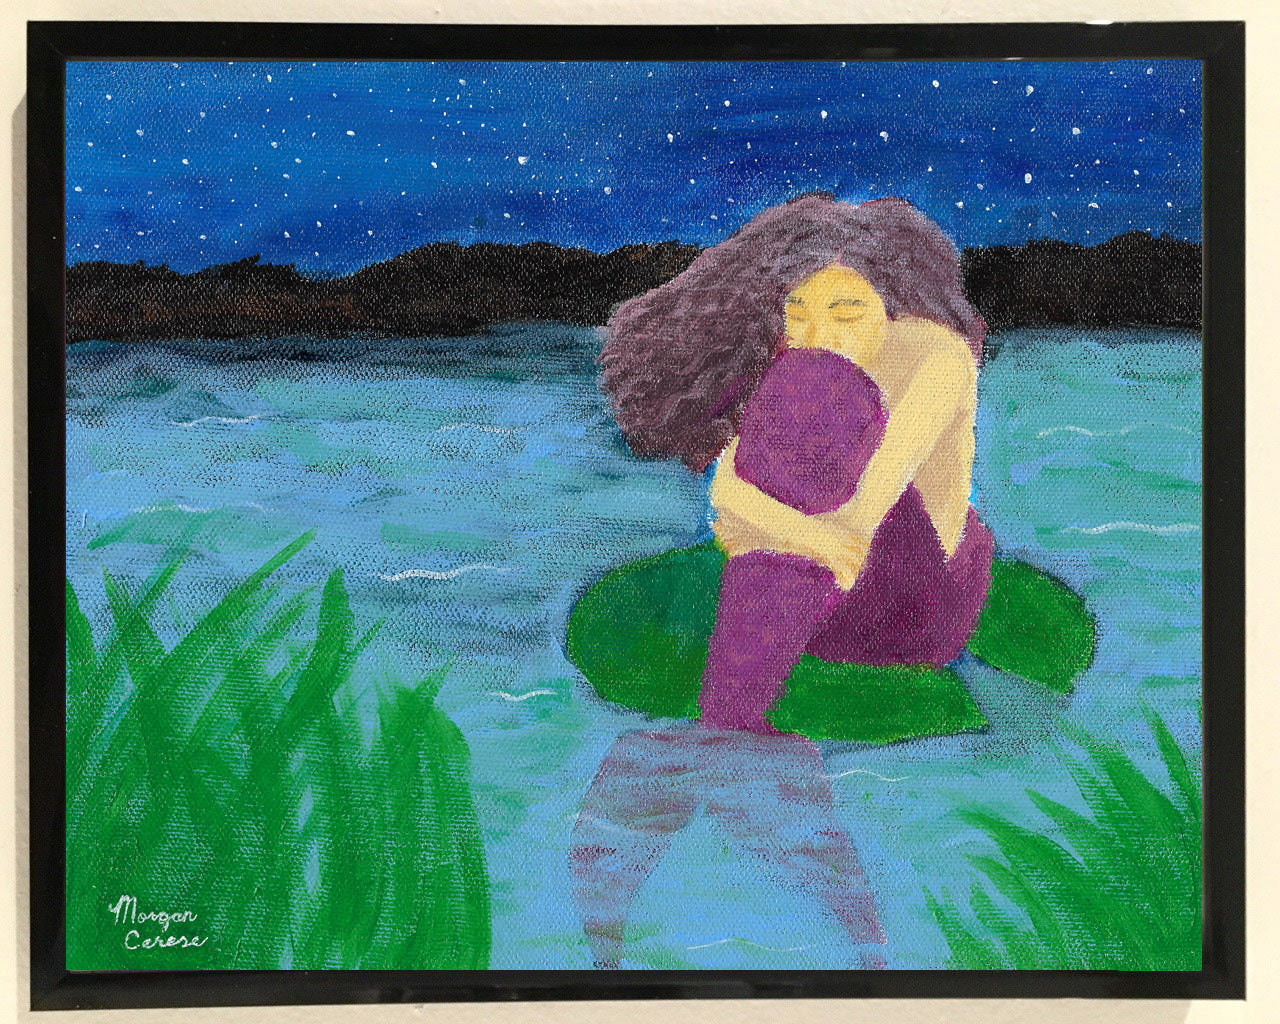 The Lost Mermaid Print - 8x10 inches